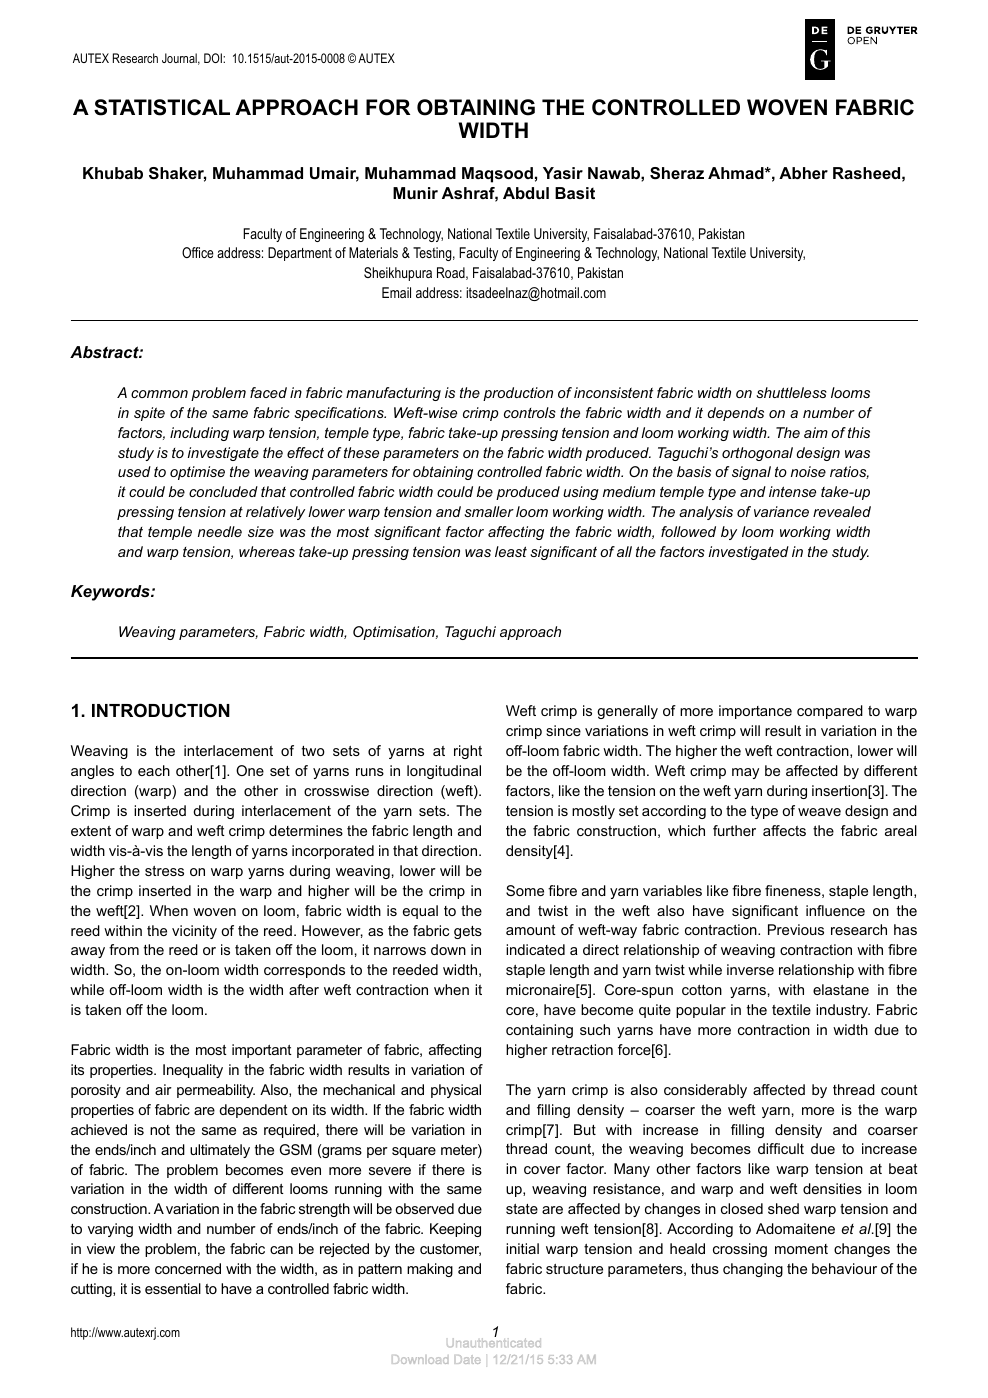 A Statistical Approach For Obtaining The Controlled Woven Fabric Width Topic Of Research Paper In Materials Engineering Download Scholarly Article Pdf And Read For Free On Cyberleninka Open Science Hub